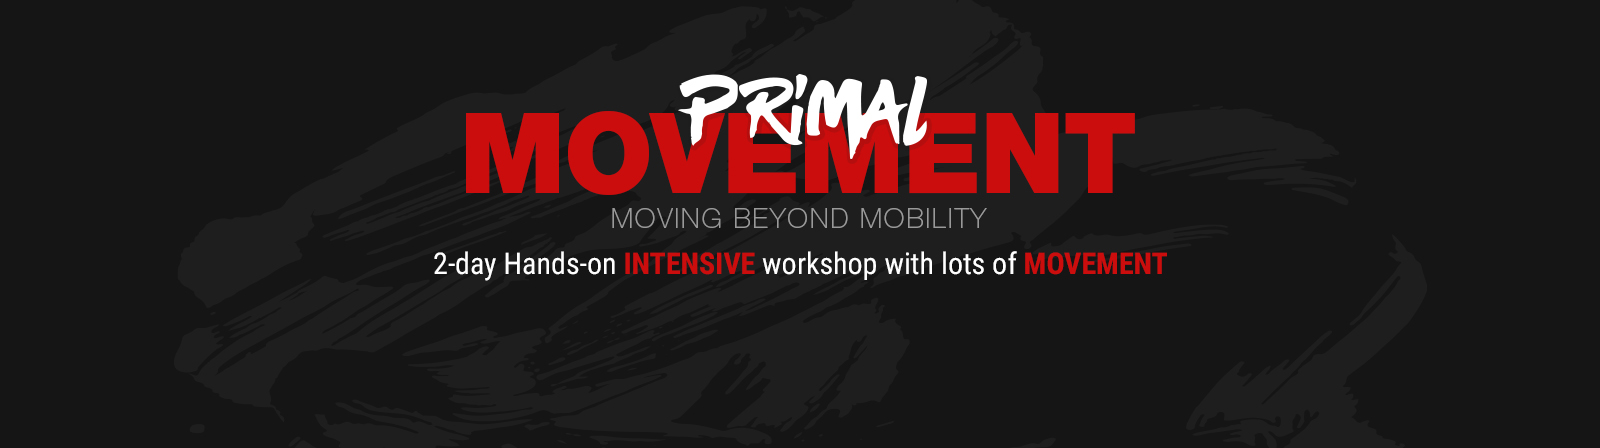 Primal Movement chains workshop by Perry Nickleston